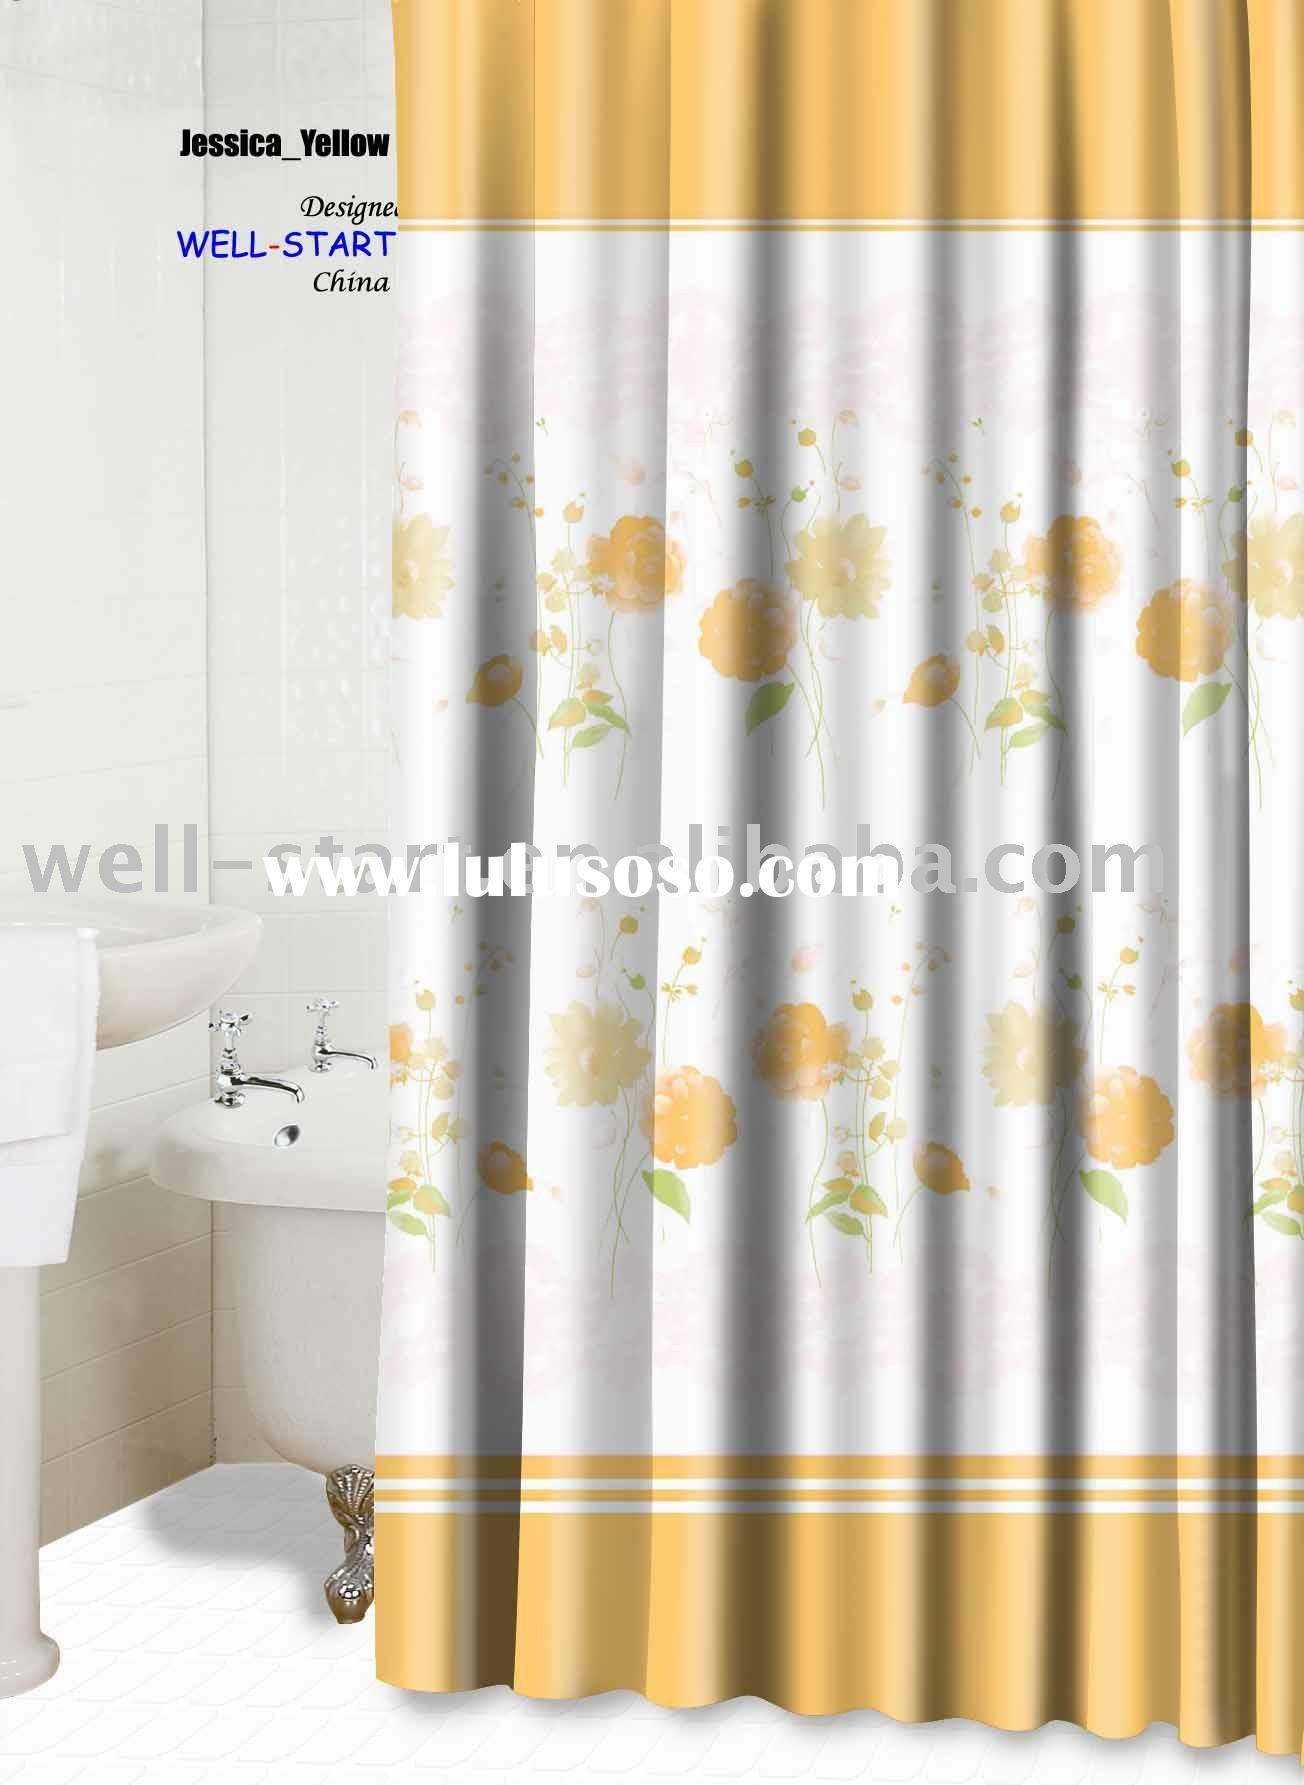 Jessia yellow printed polyester fabric shower curtain